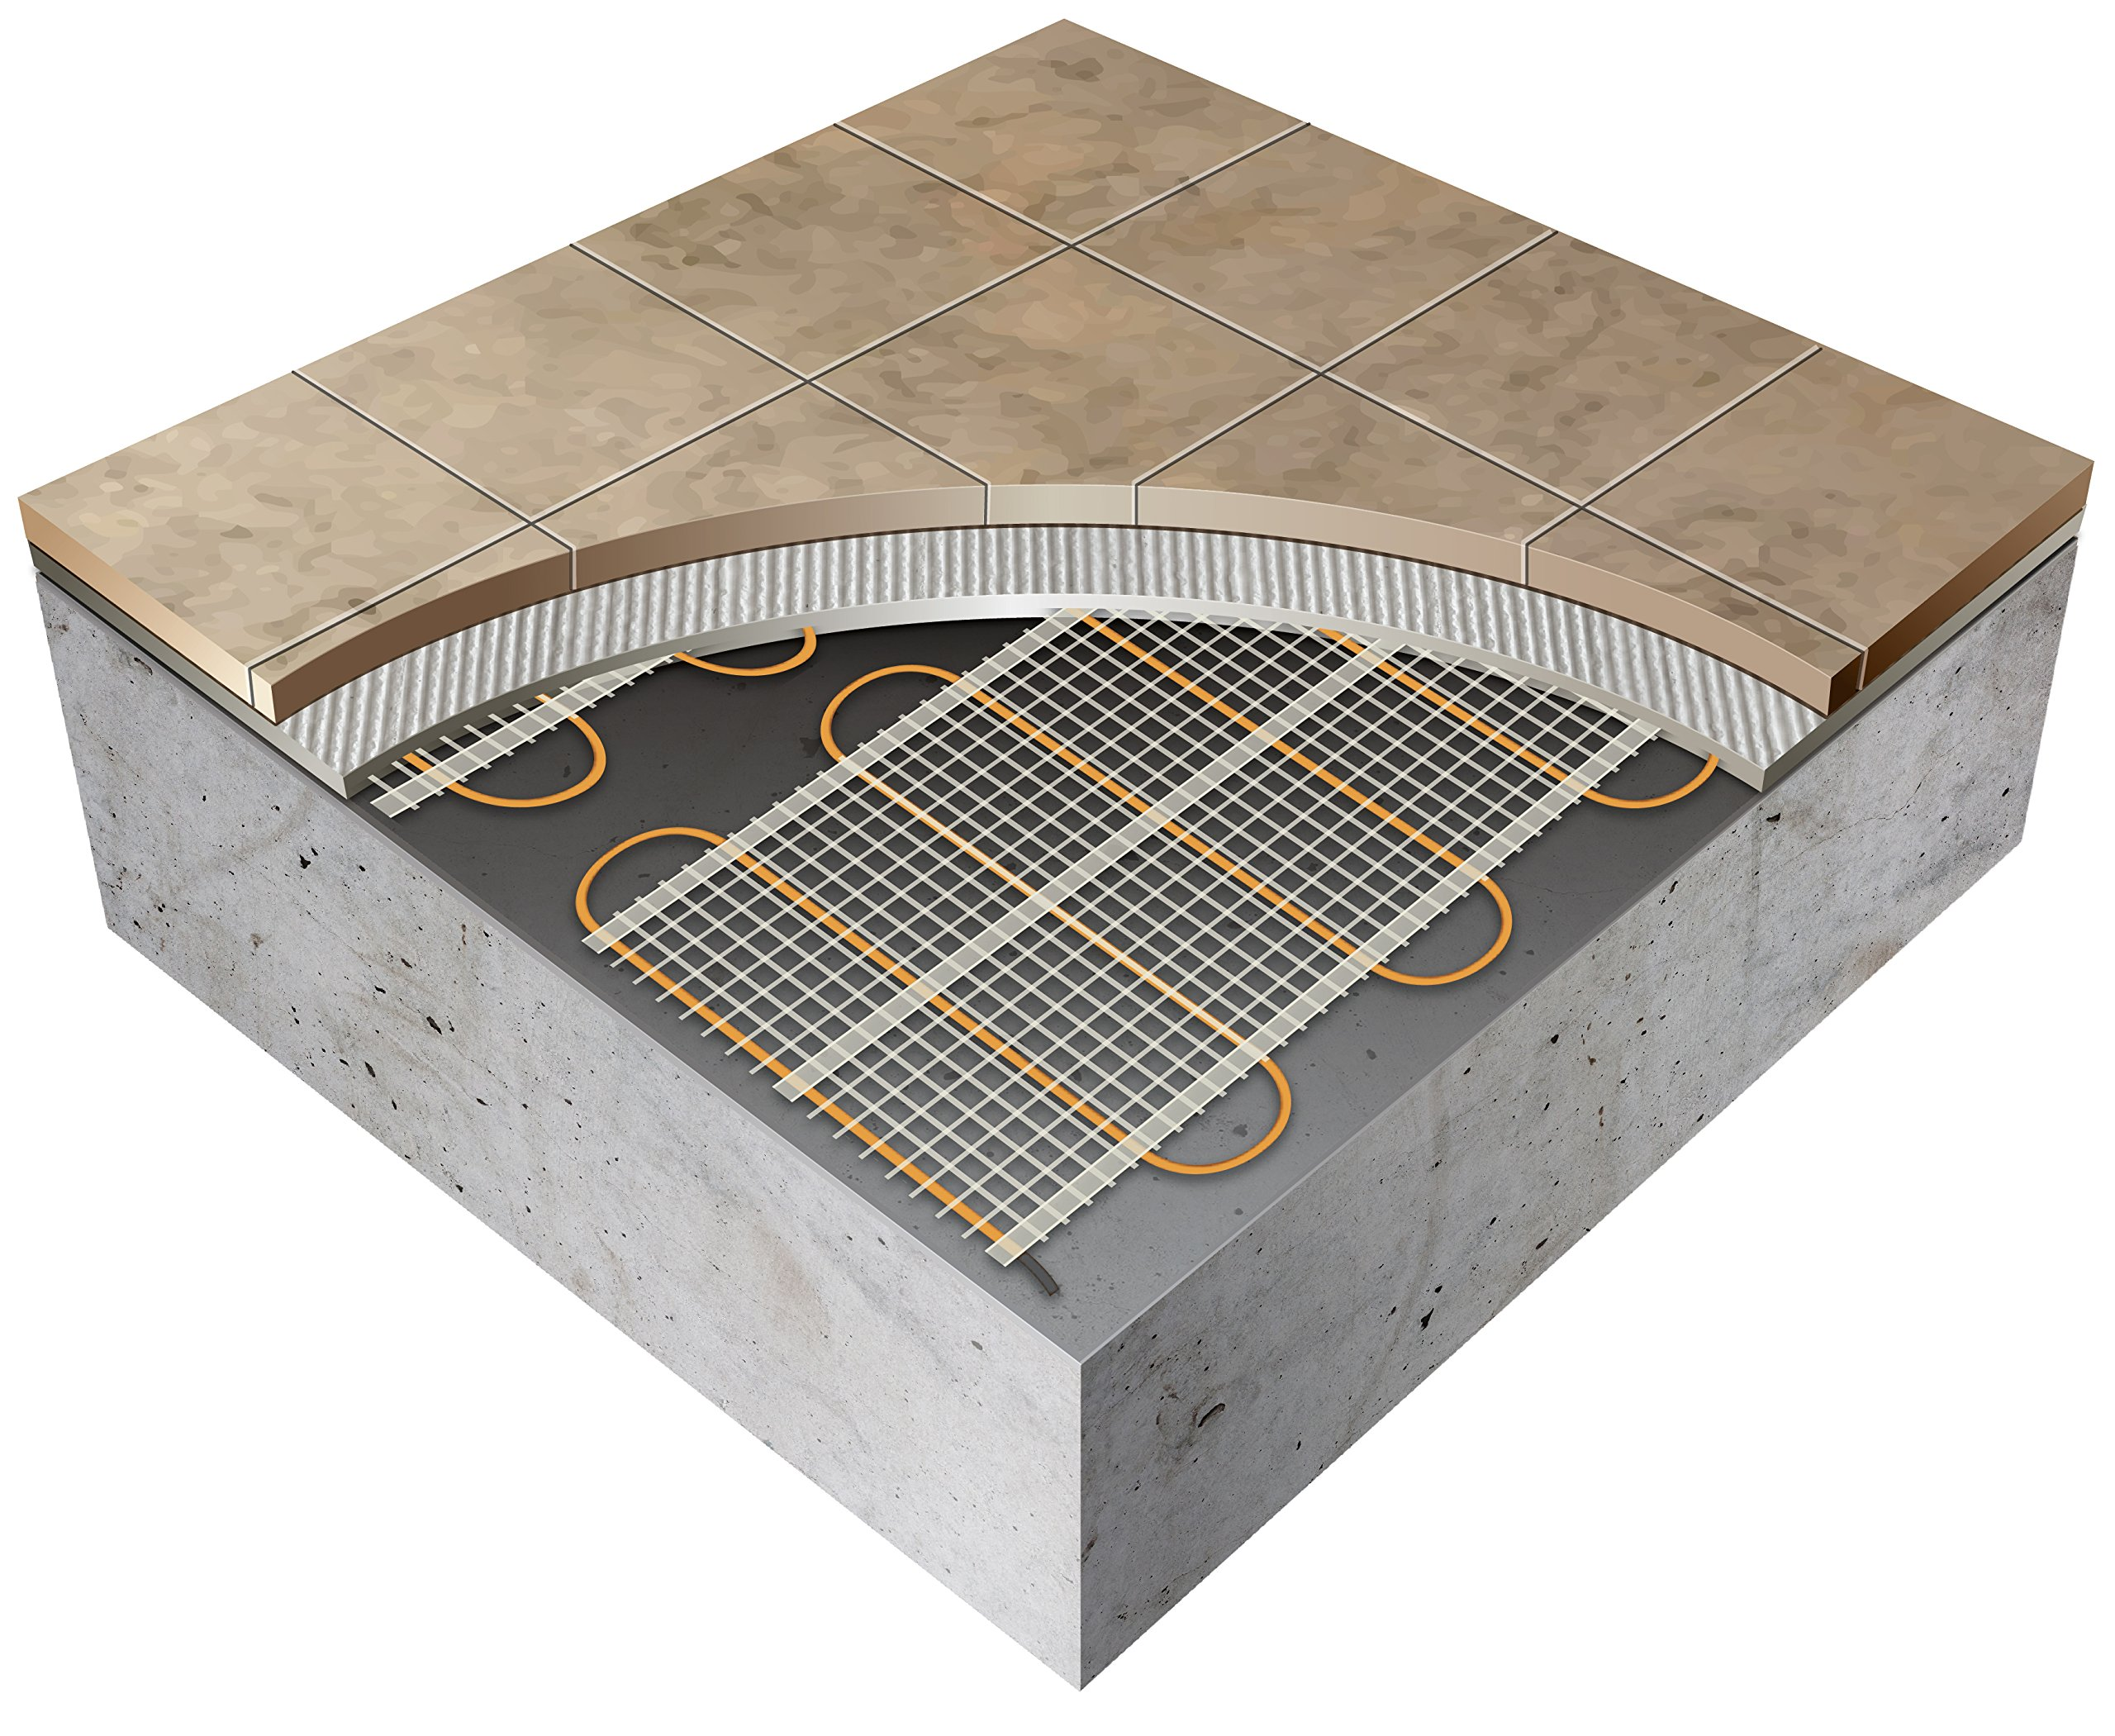 150 sq.ft. 240-Volt. Ceramic & Stone Tile Electric Floor Heating Kit w/Honeywell Floor Thermostat and Installation Alarm, (100 ft. x 1.5 ft.) - Other Sizes Available